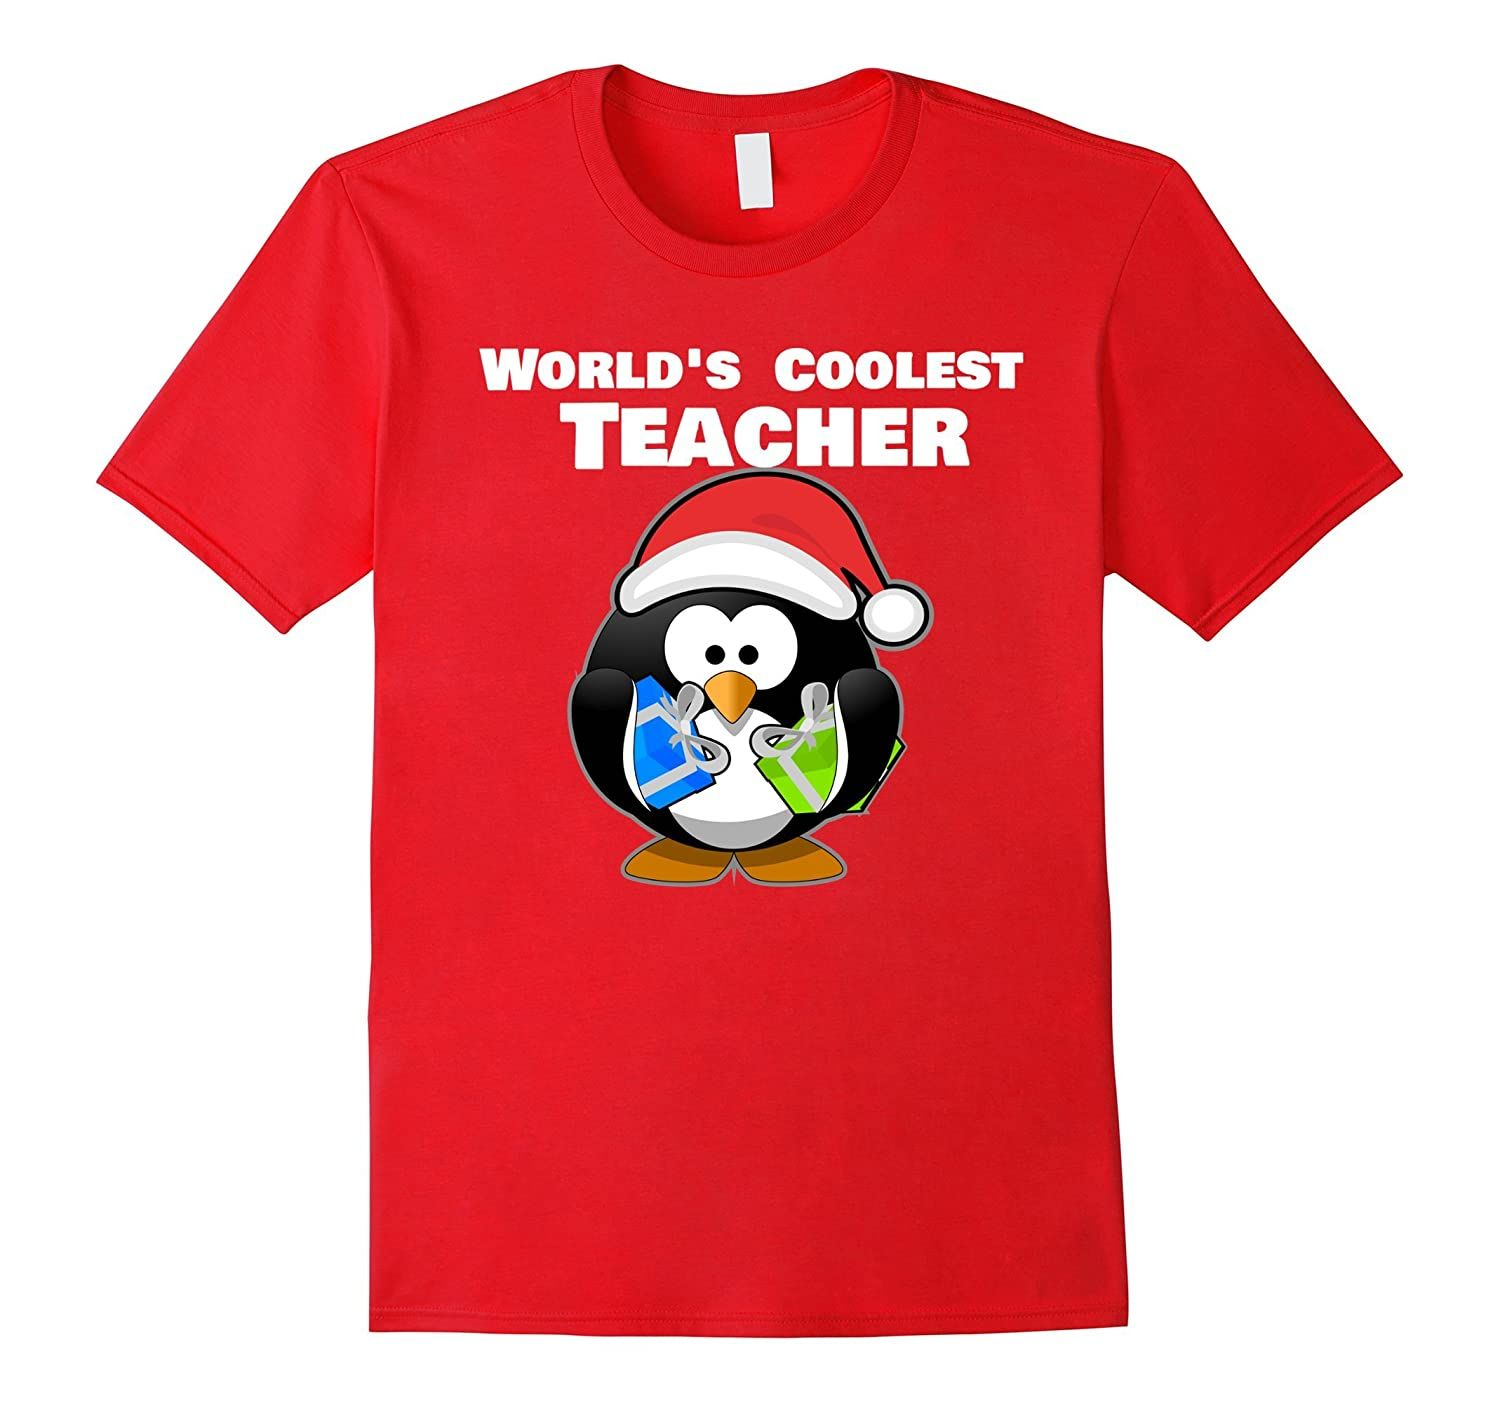 World's Coolest Teacher Shirt Holiday Gift For Teachers